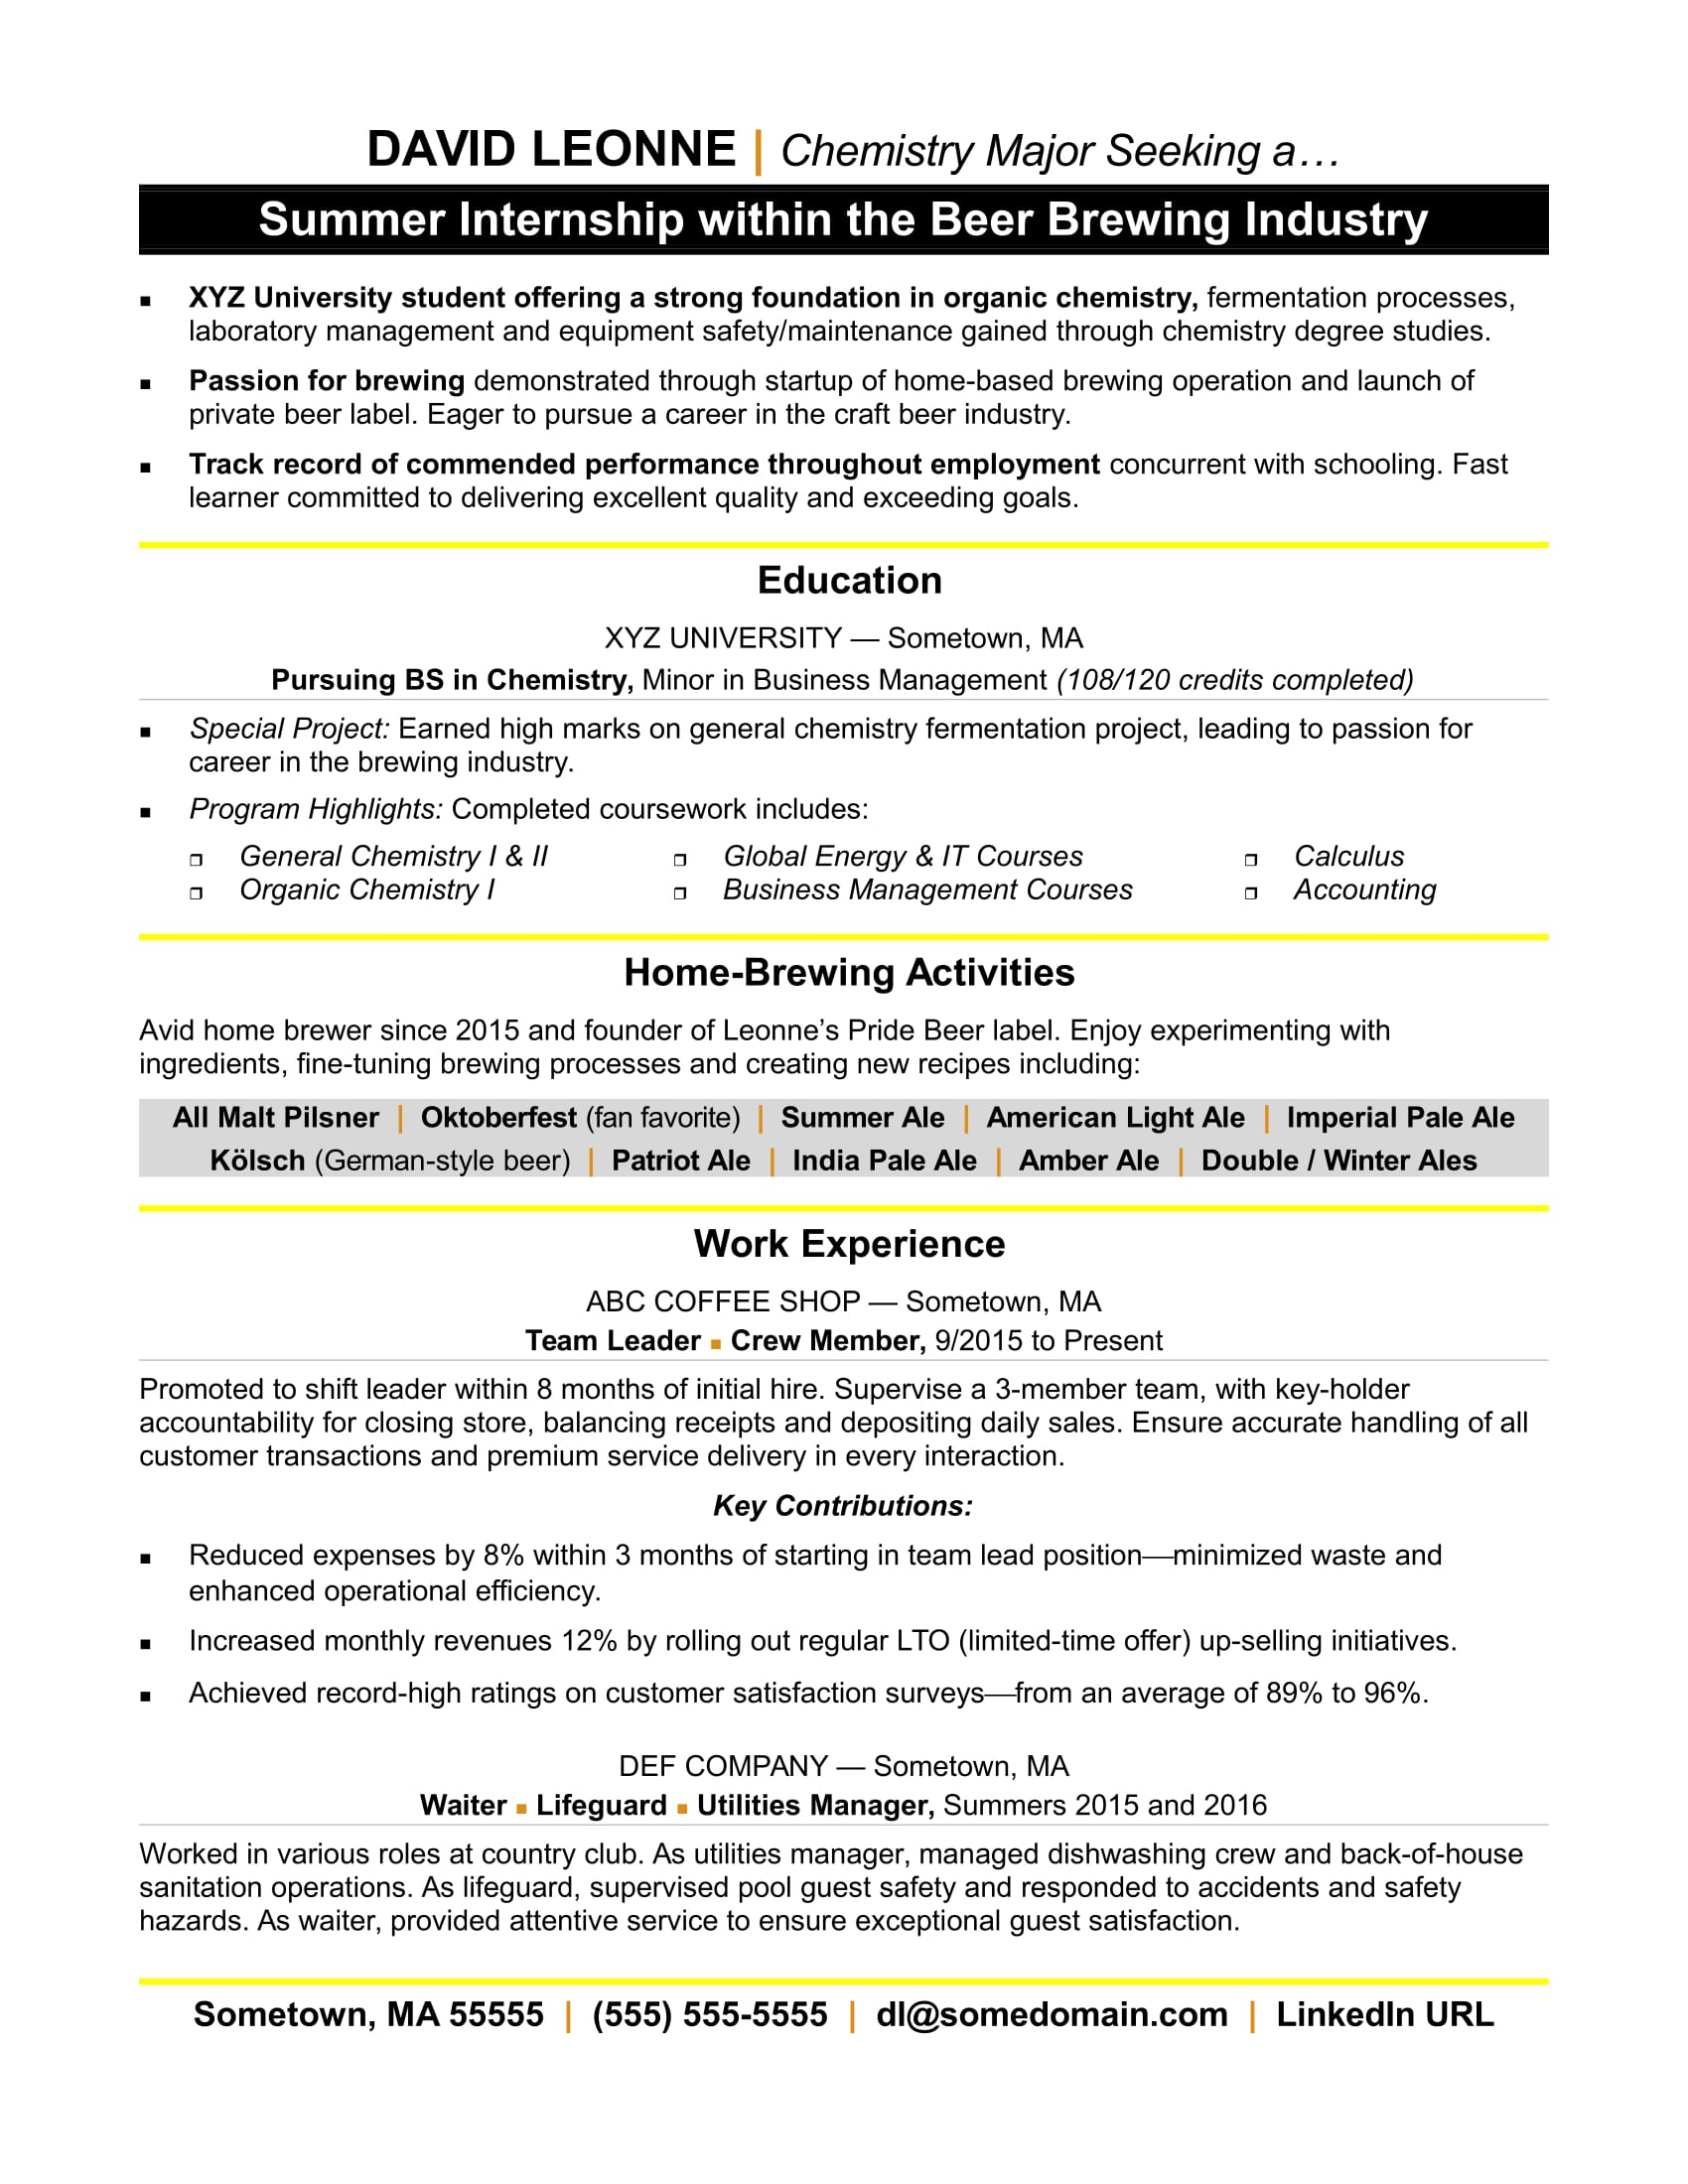 resume for internship monster summer doula example of software engineer cruise ship Resume Resume For Summer Internship